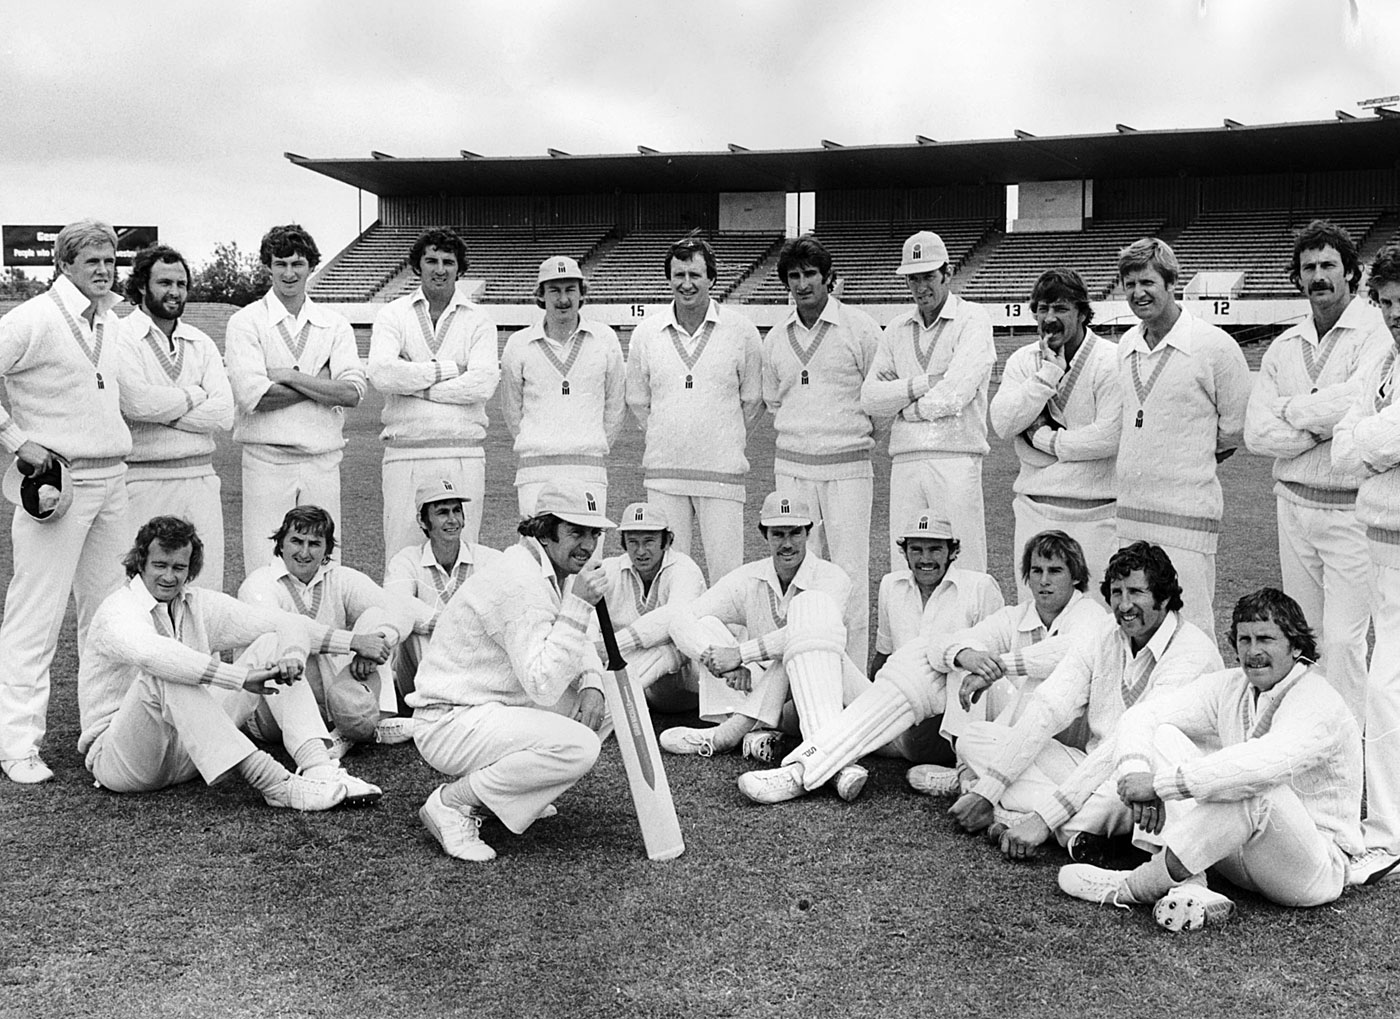 Packer's men: the WSC Australian team at St Kilda Football Ground in 1977